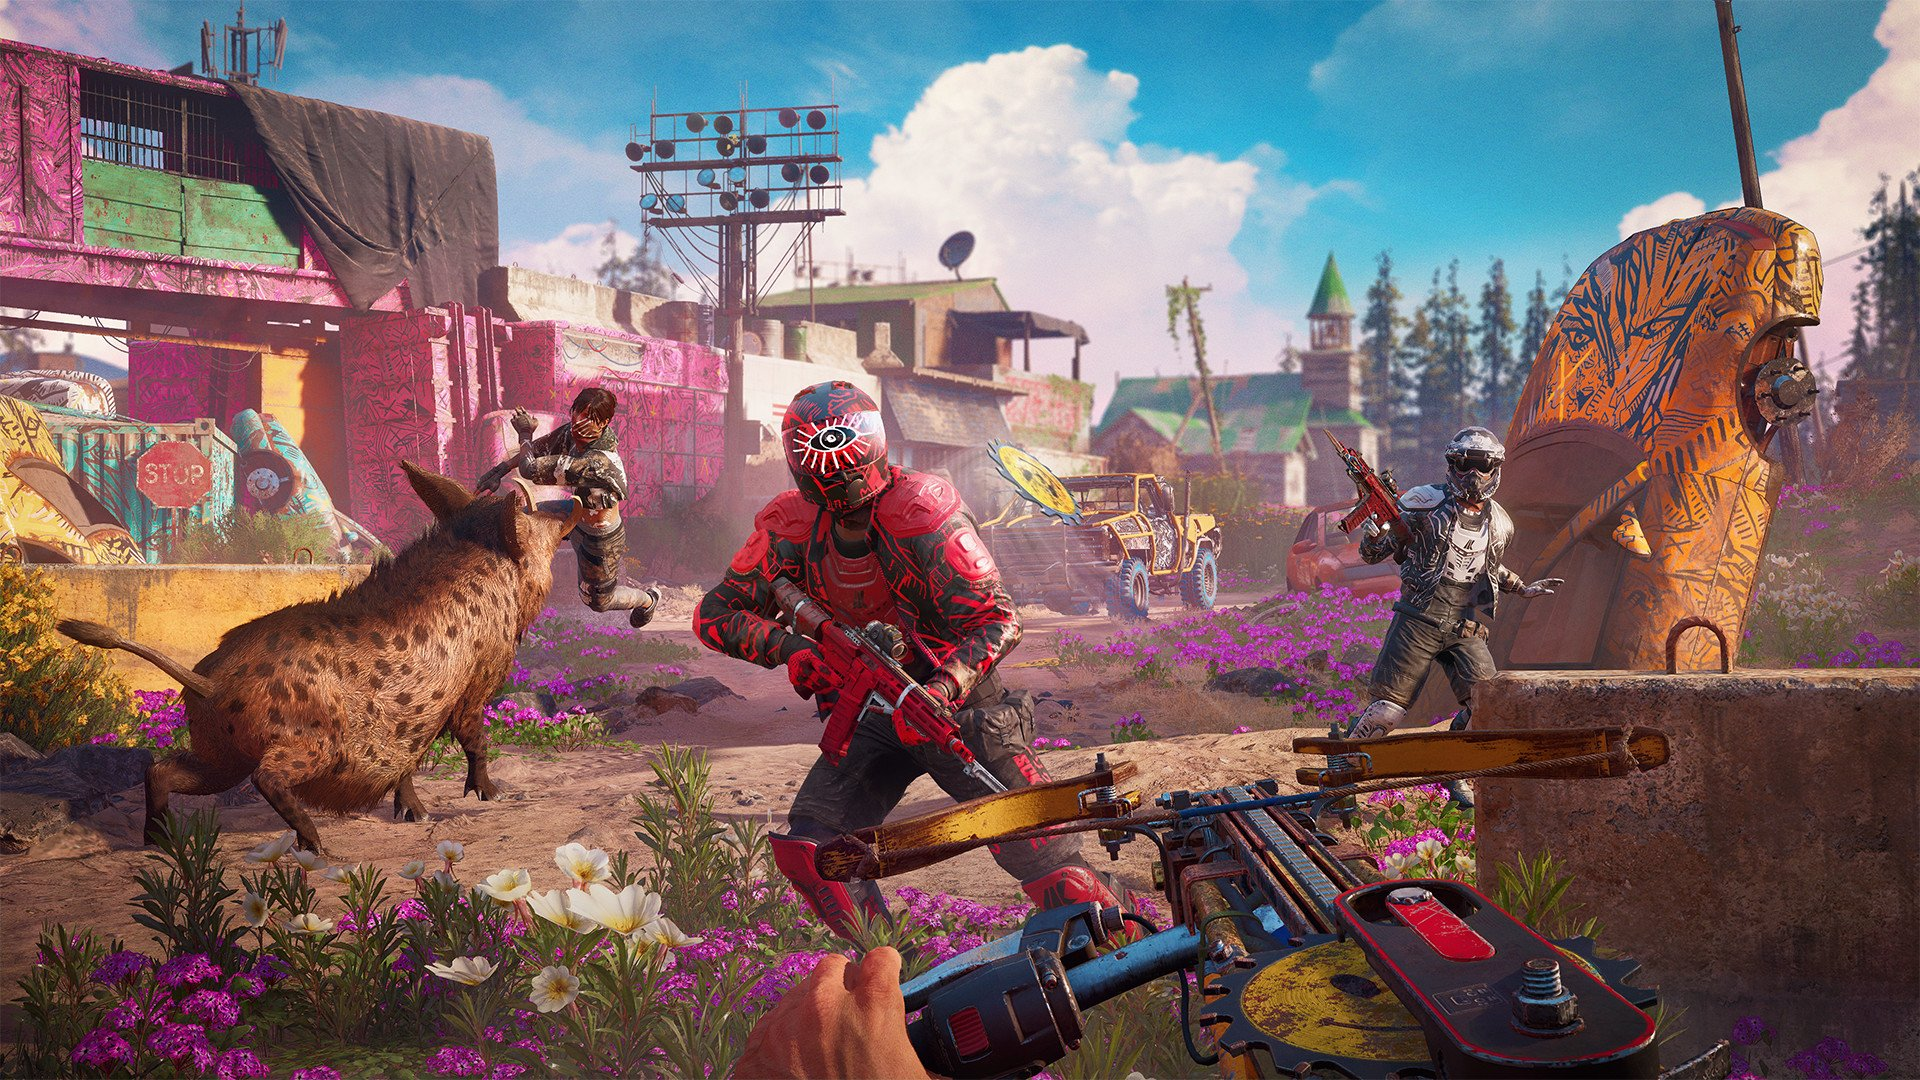 Review: The Redundant Far Cry New Dawn Badly Needs a